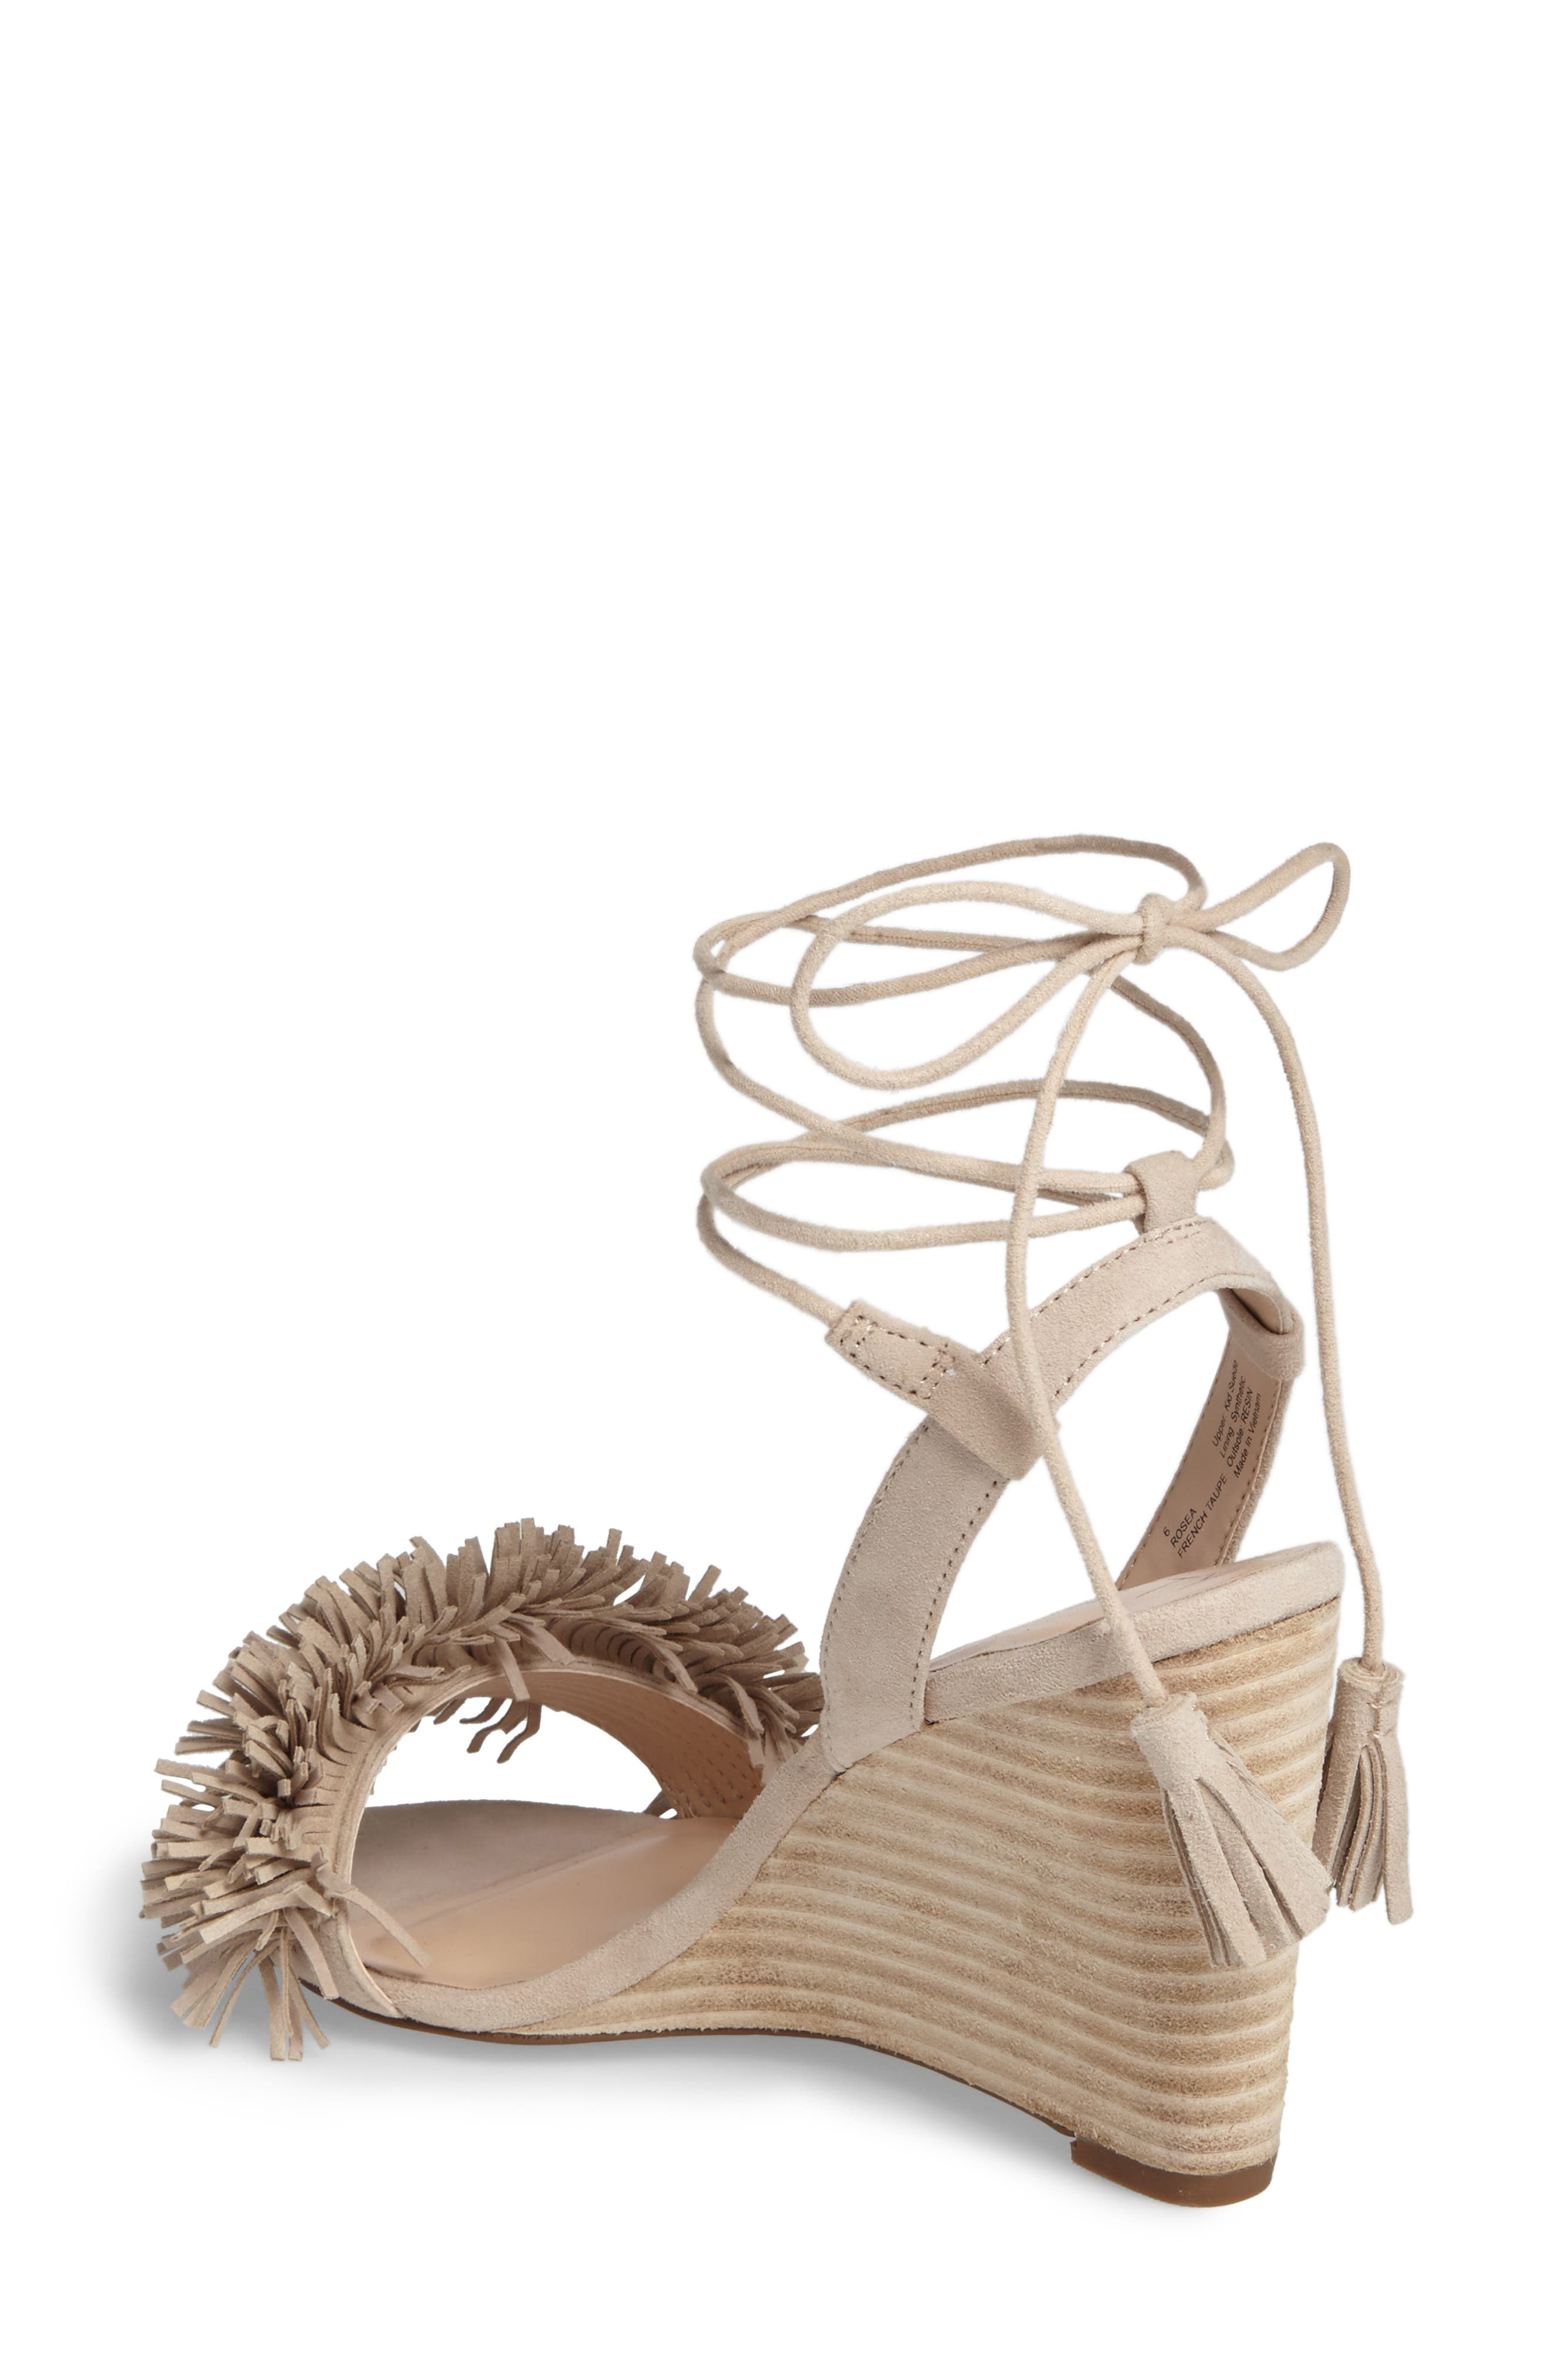 Rosea Ankle Wrap Sandal,                             Alternate thumbnail 2, color,                             French Taupe Suede